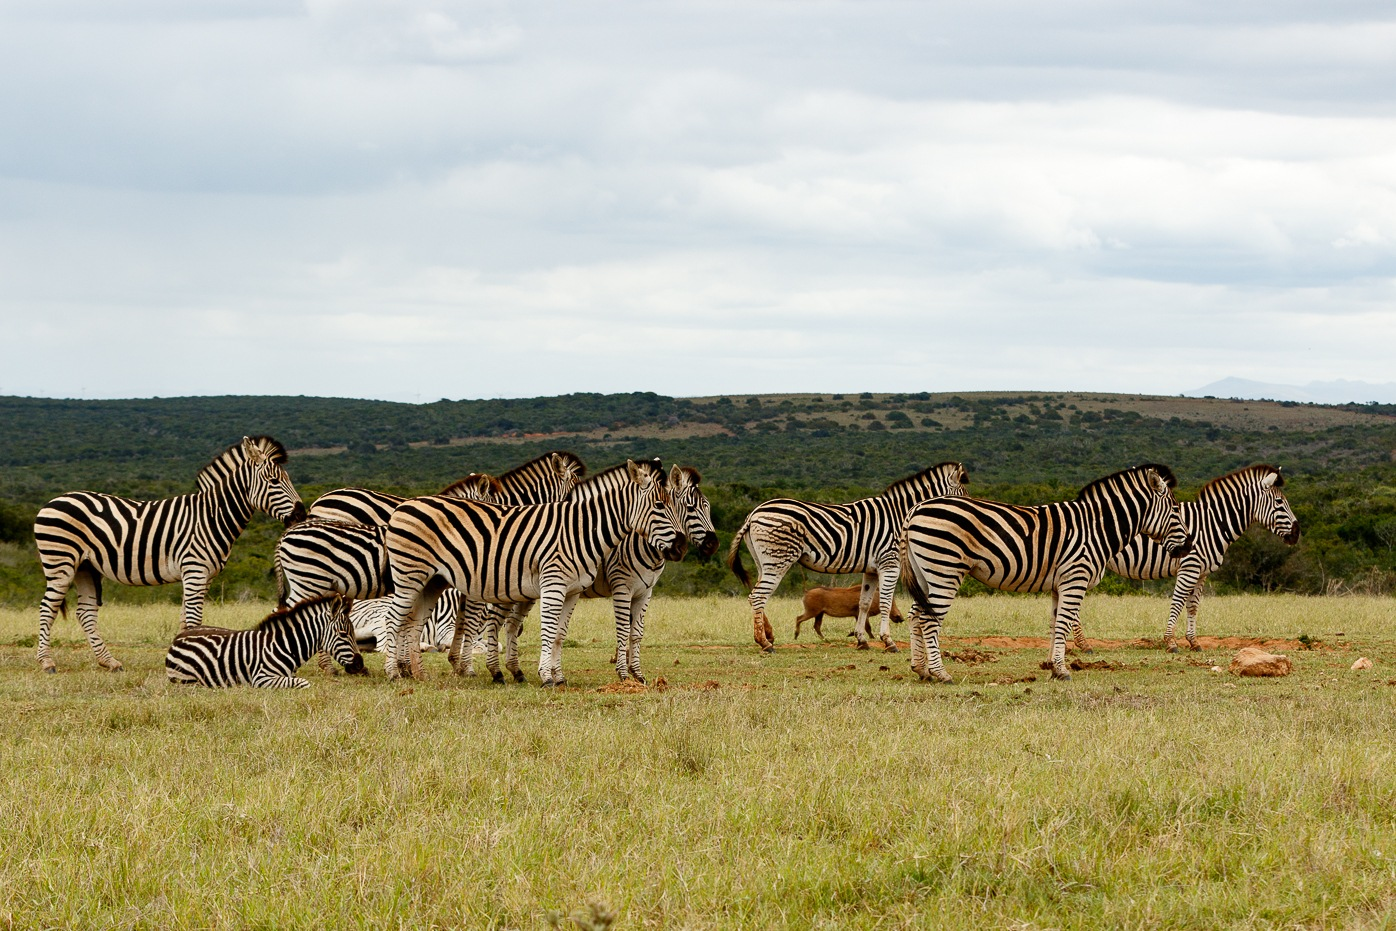 Zebras lining up for some water by Charissa de Scande Lotter